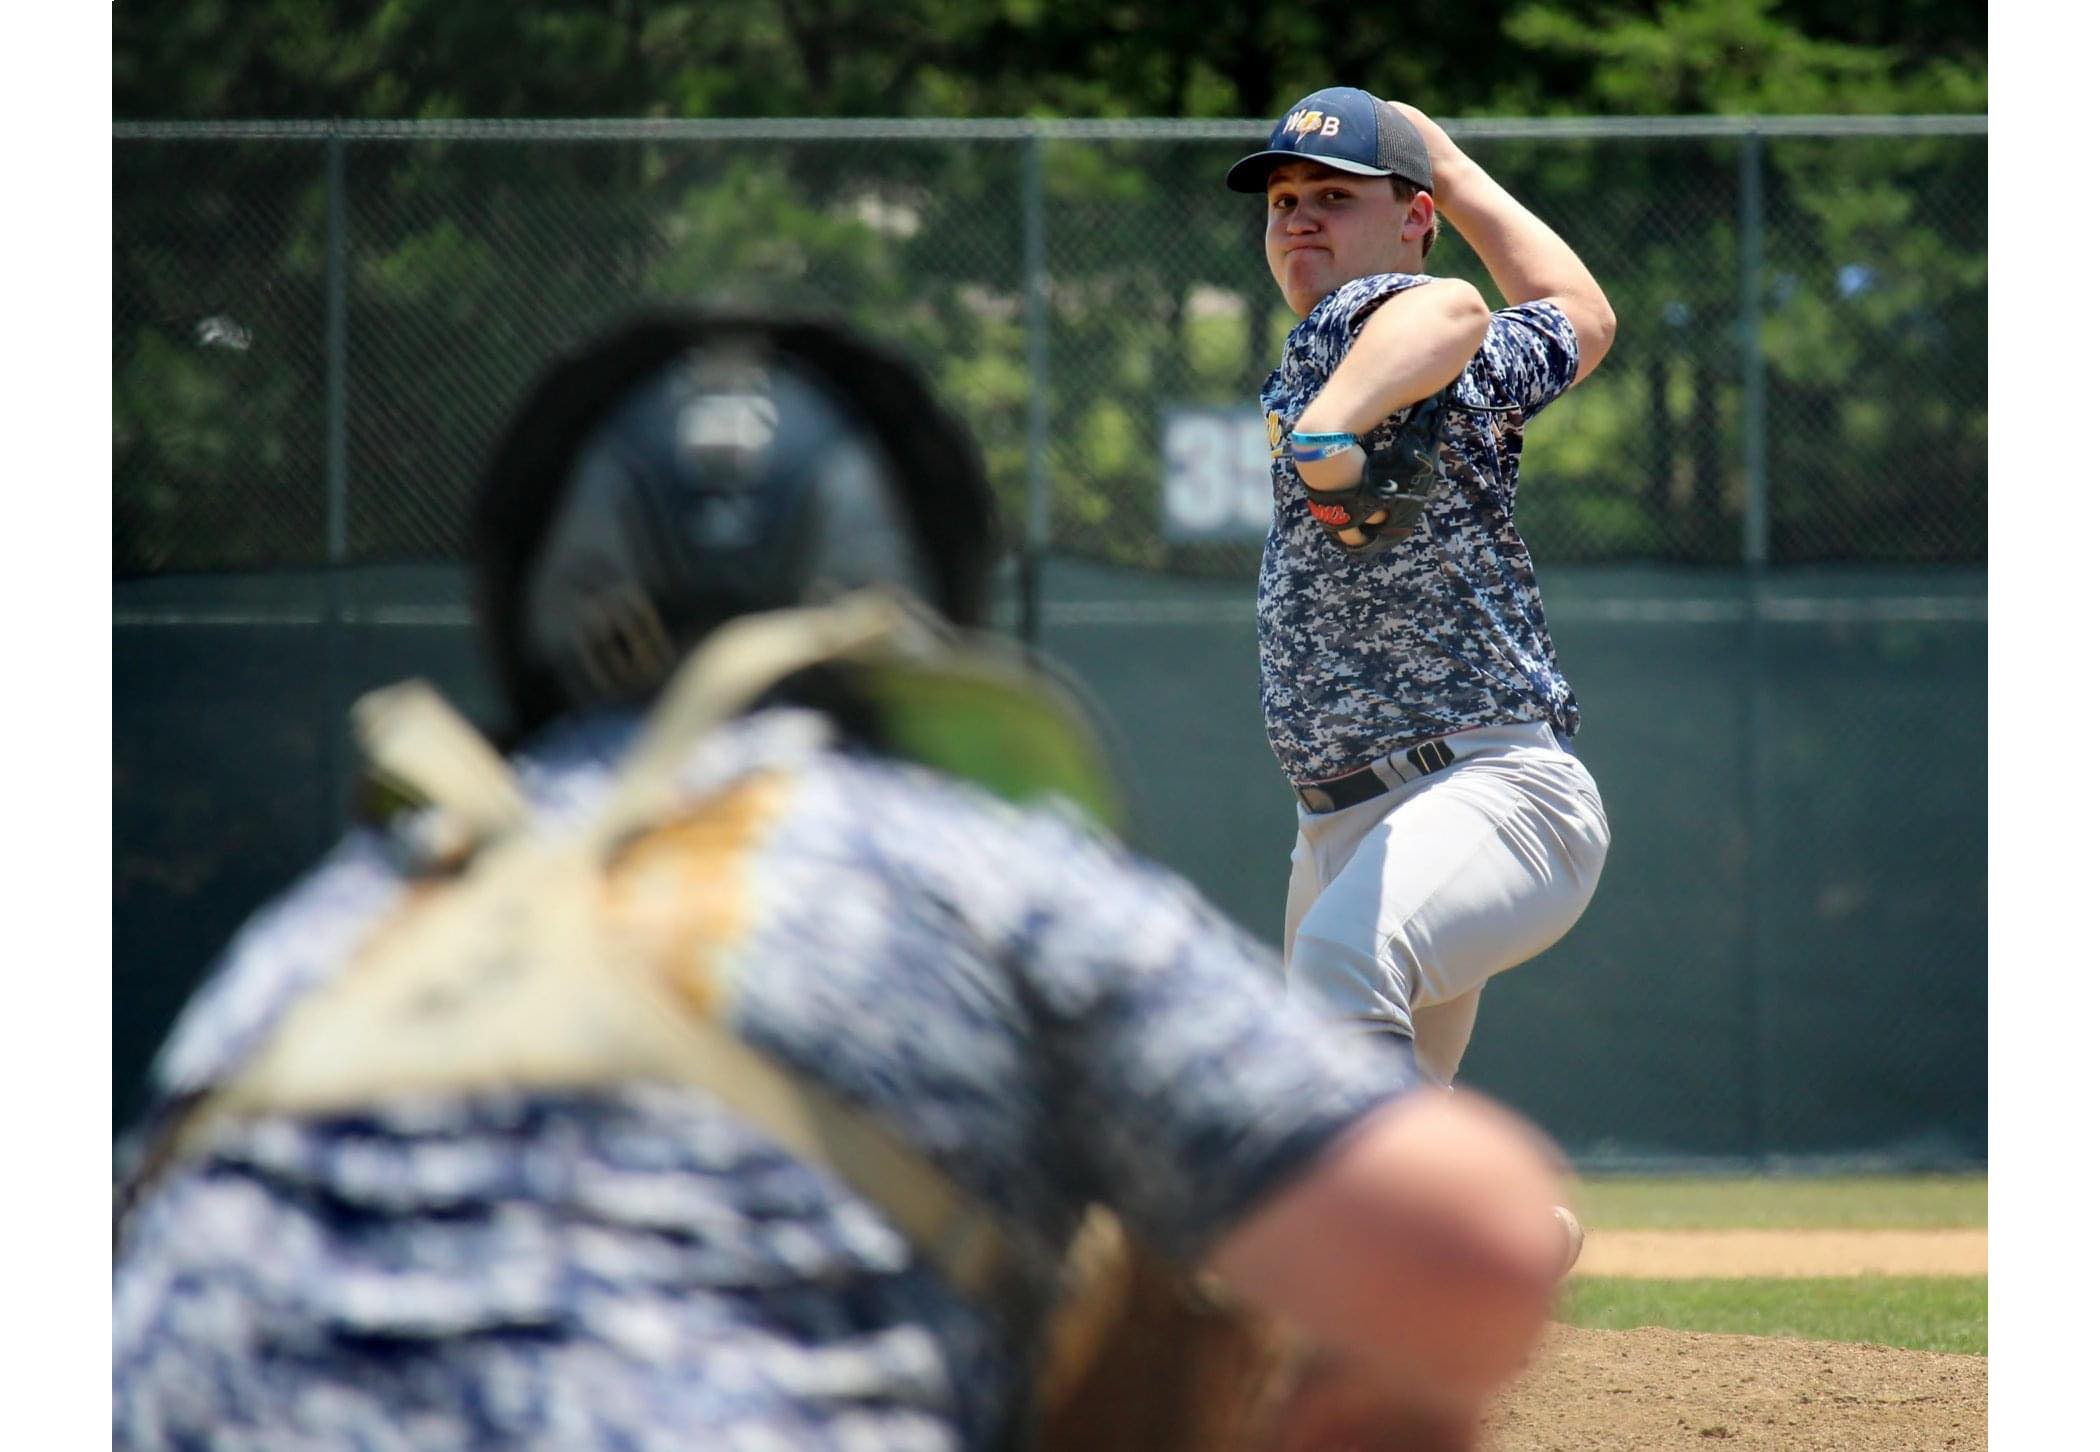 A 16-Year old baseball star, Landon Bonneville, is paving his way to success